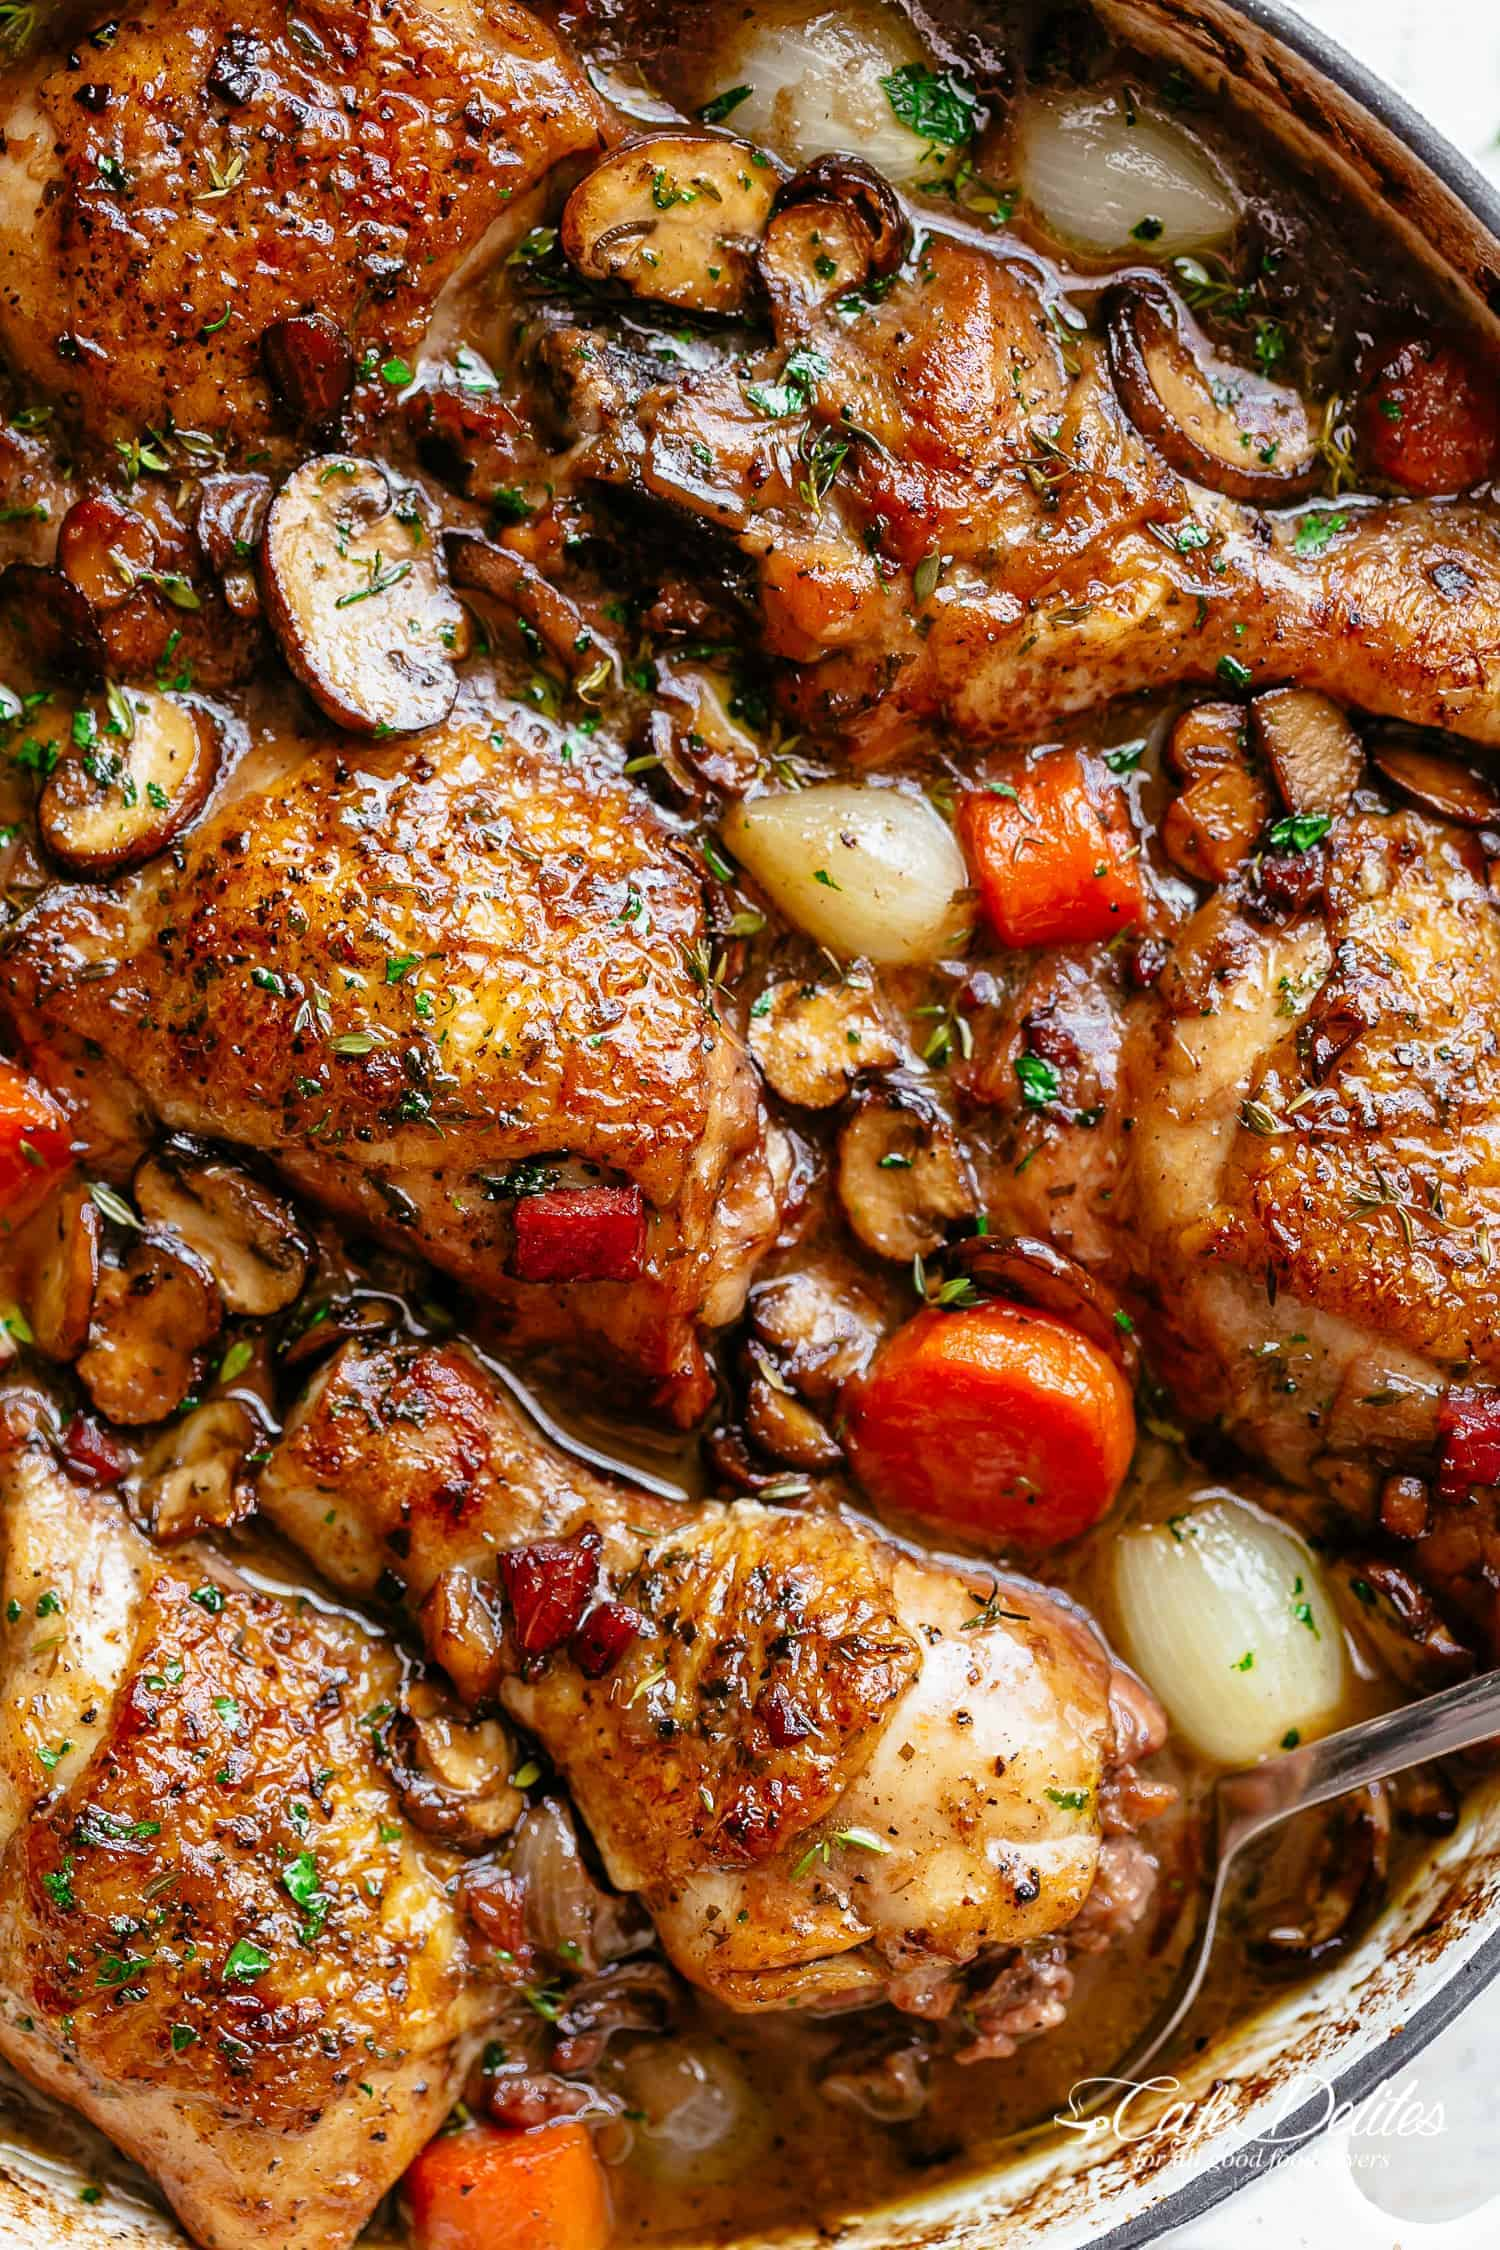 Coq Au Vin, or chicken in wine, is a popular classic French Chicken Stew made easy with crispy chicken pieces!